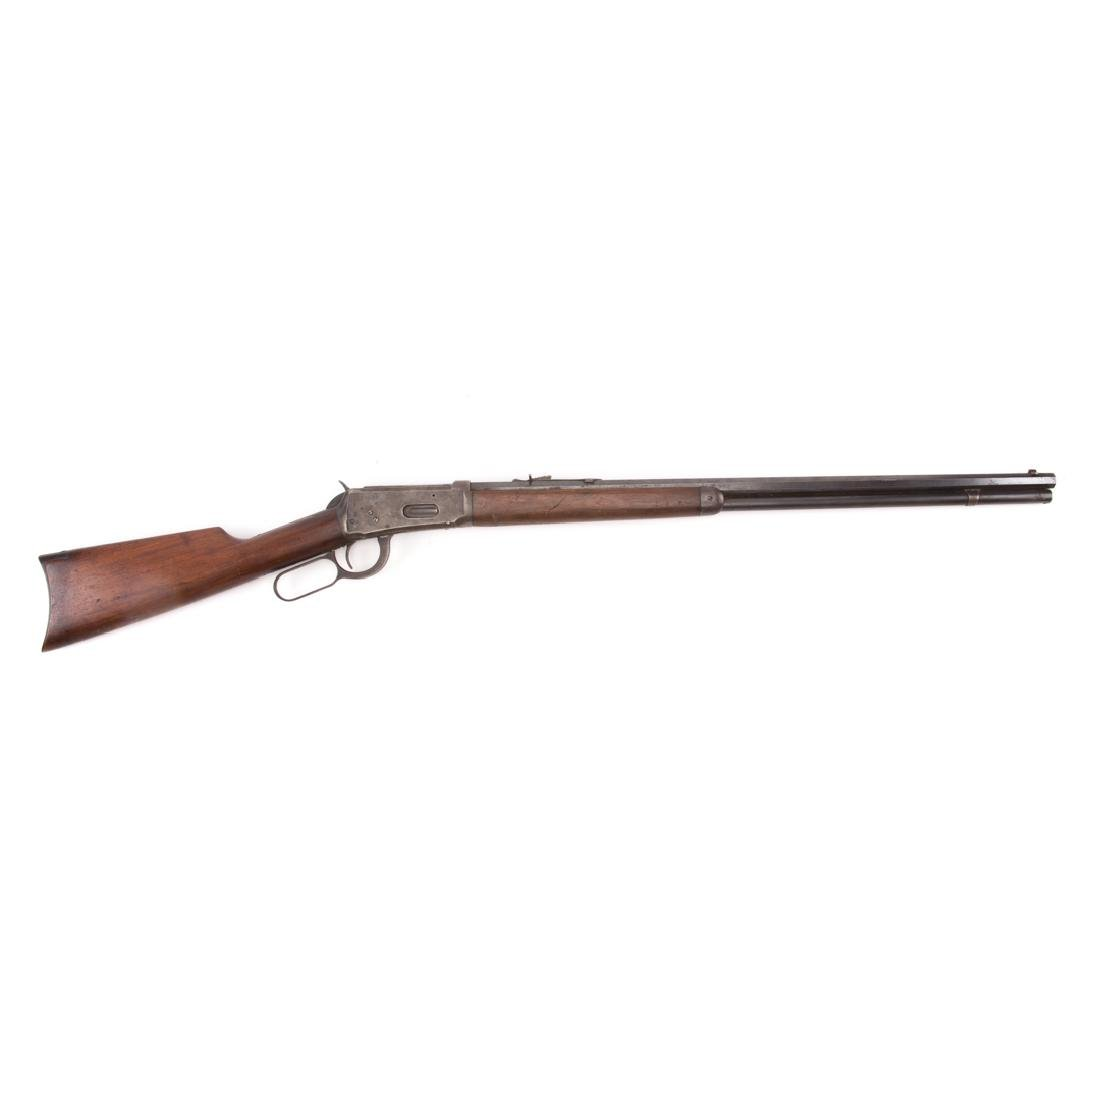 Winchester rifle